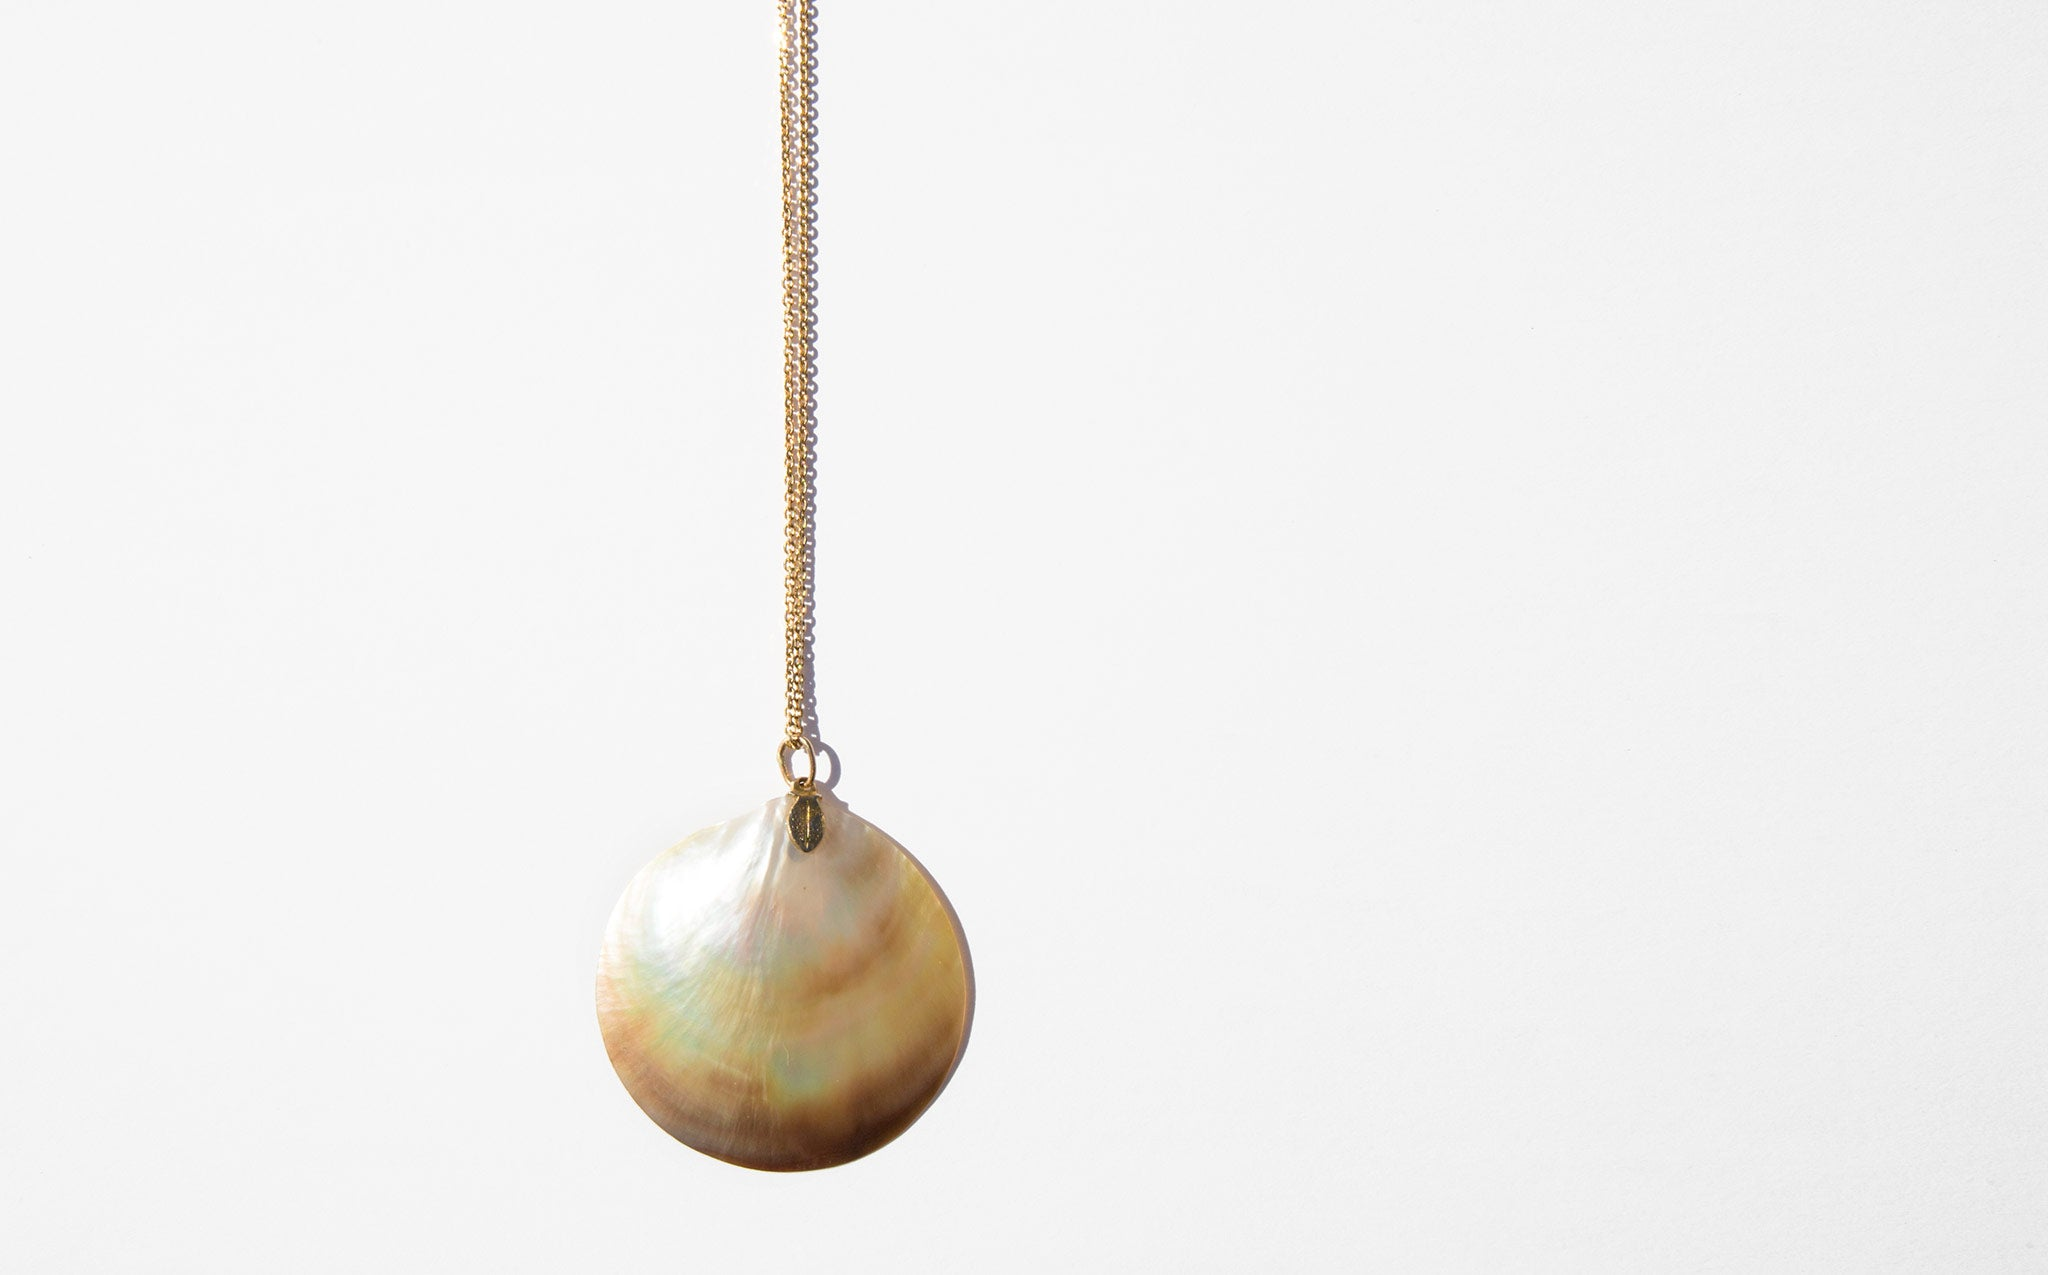 Pearlescent Shell Pendant Necklace